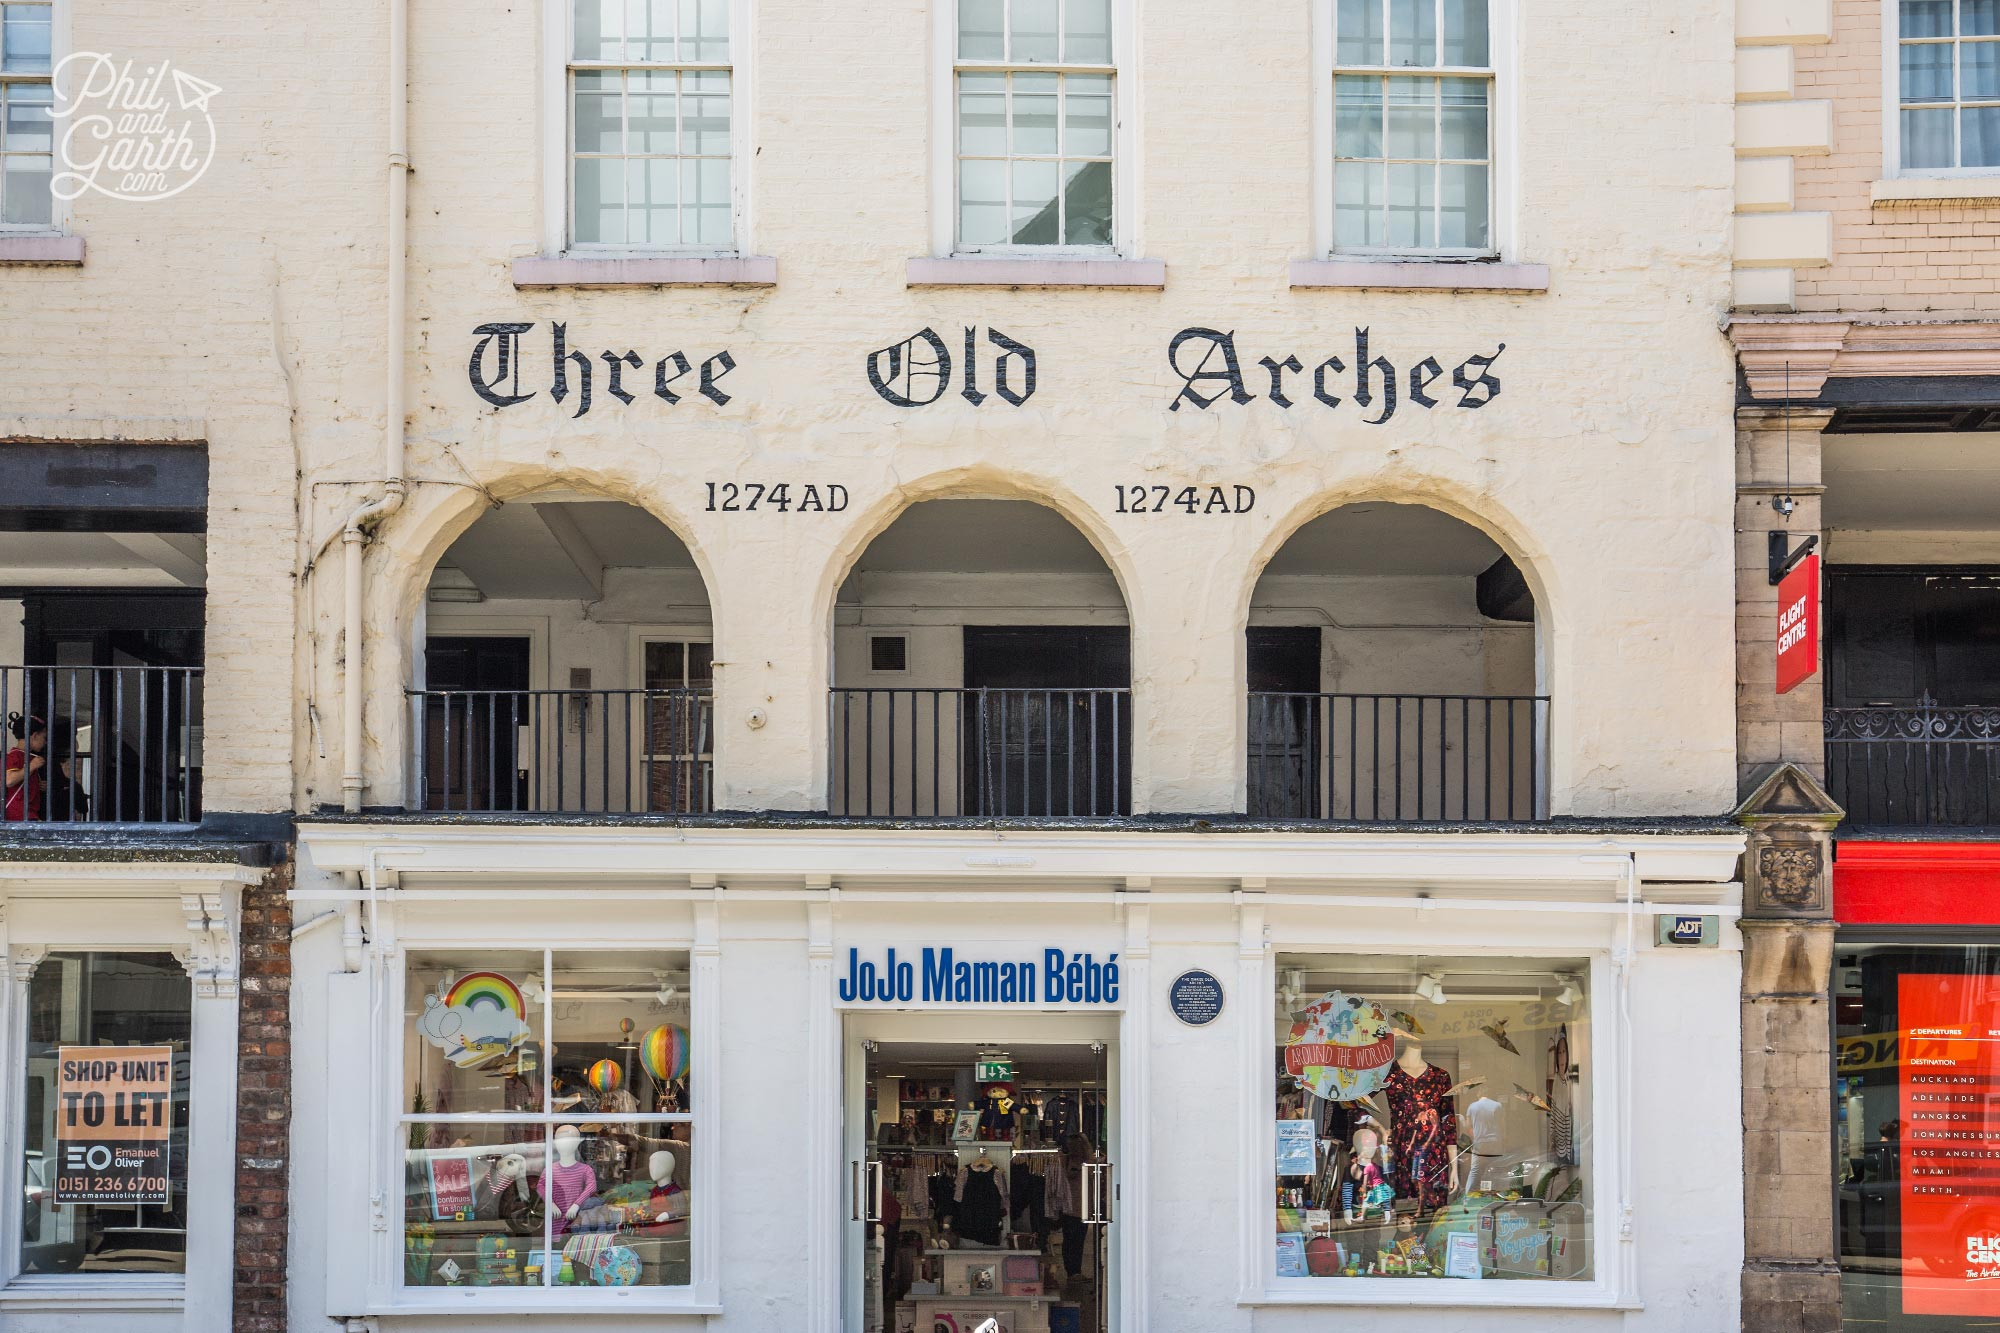 Three Old Arches - The oldest shopfront in Chester